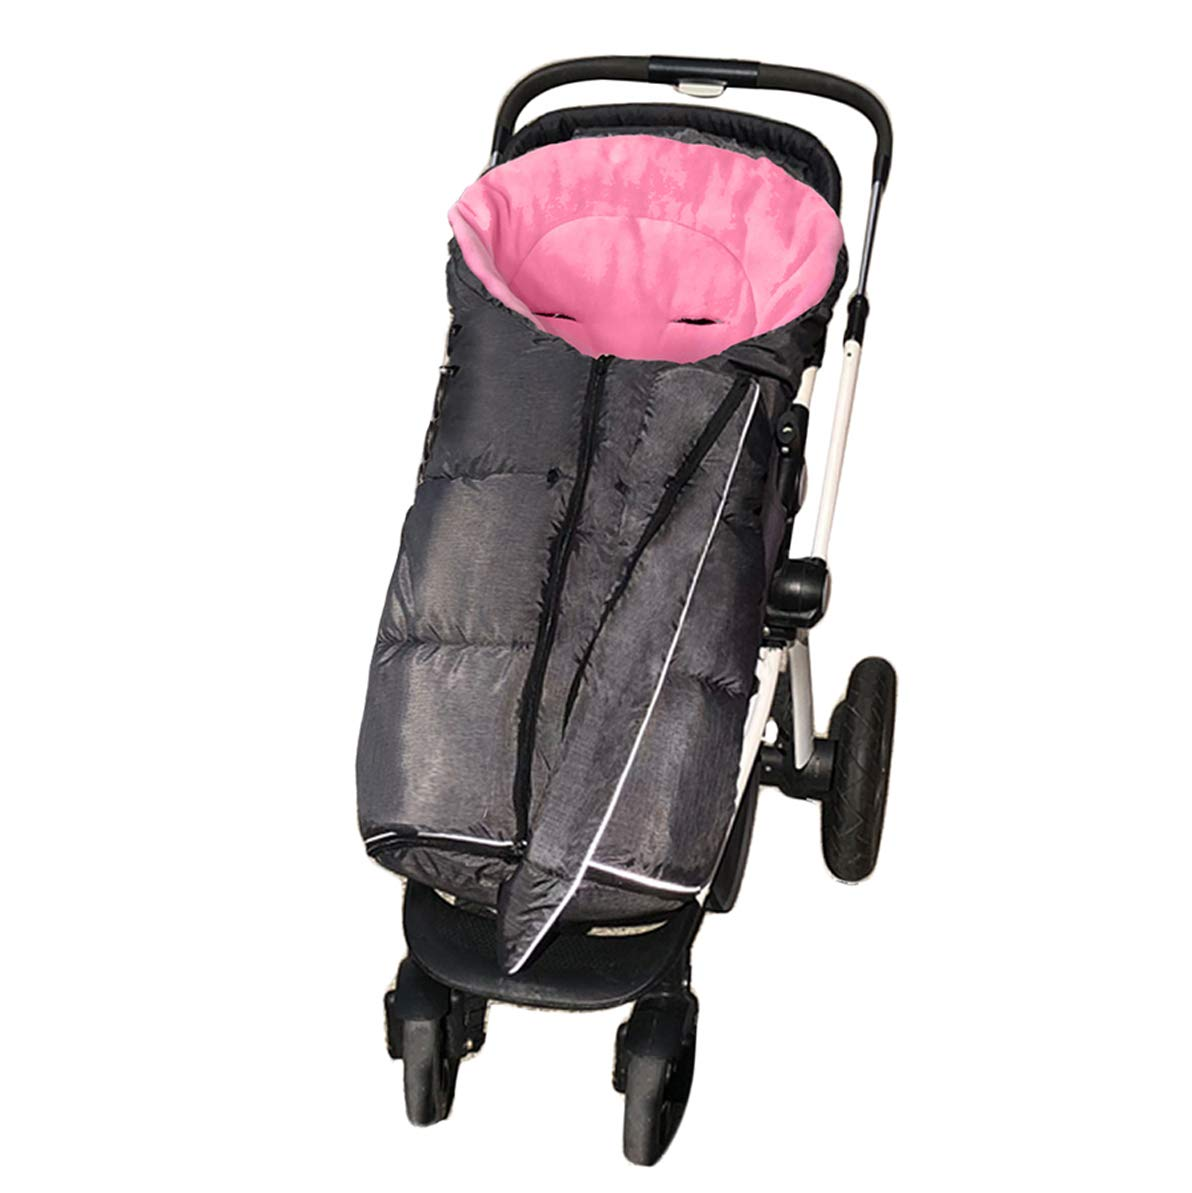 Width Adjustable Universal Stroller Footmuff Designed for Baby Grows,Waterproof Practical Features Outdoor Baby Bunting Bag,Rose